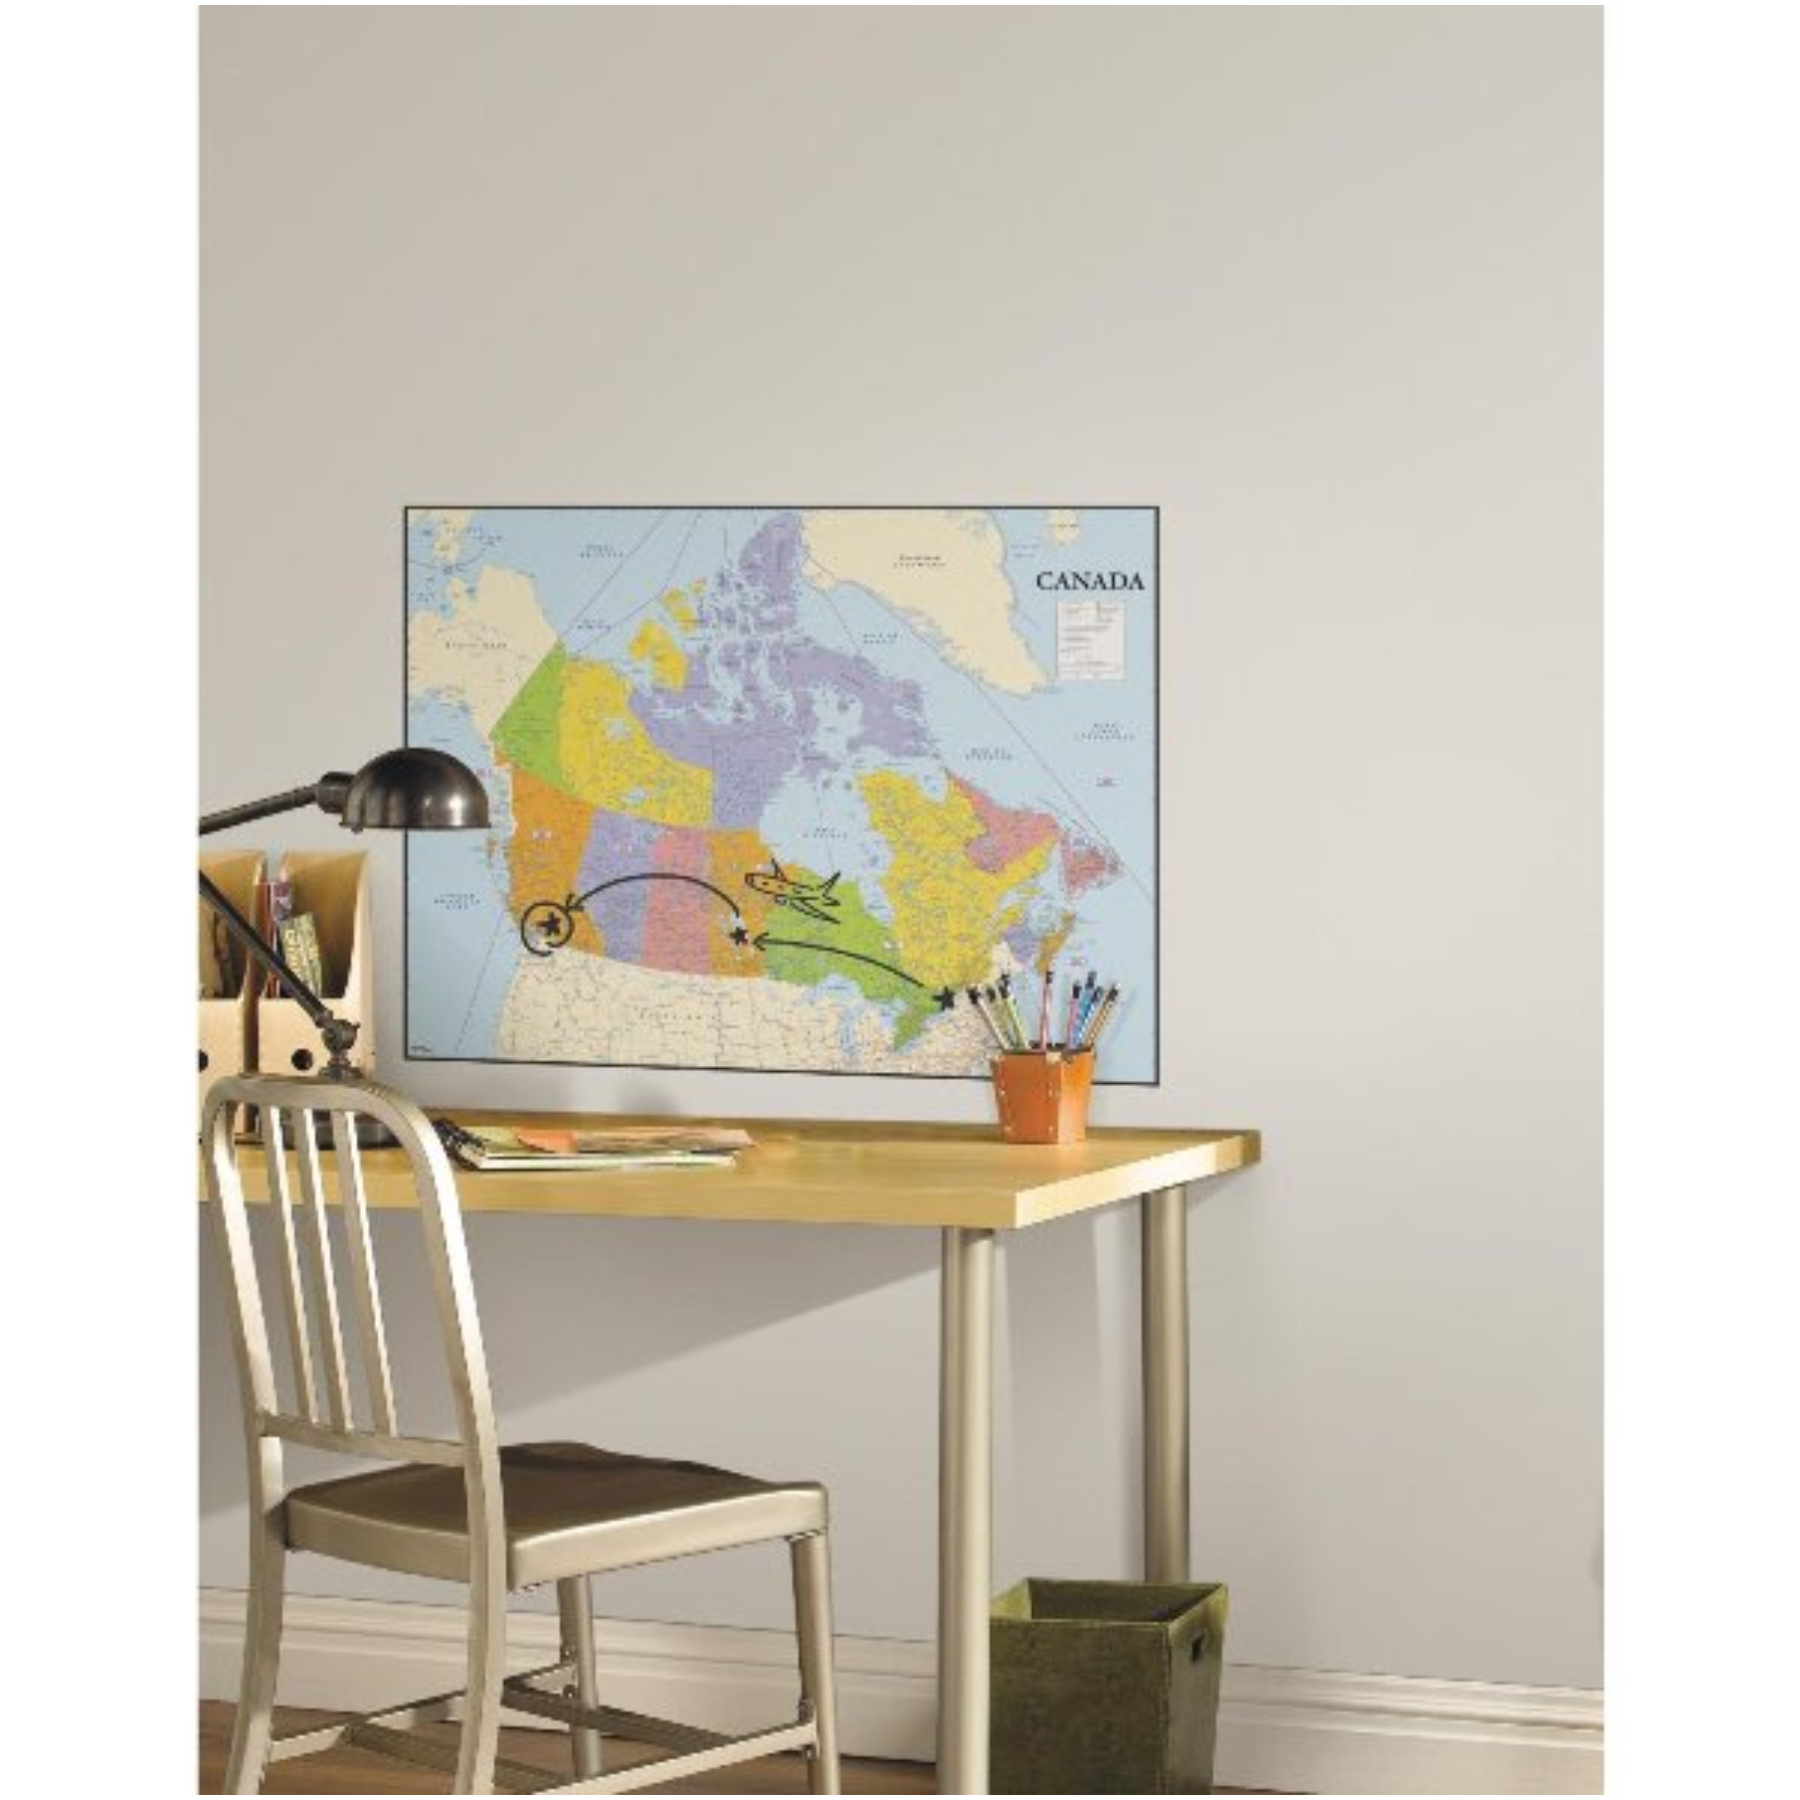 Roomates Roommates Canada Map Peel And Stick Dry Erase Giant Wall 1800x1800